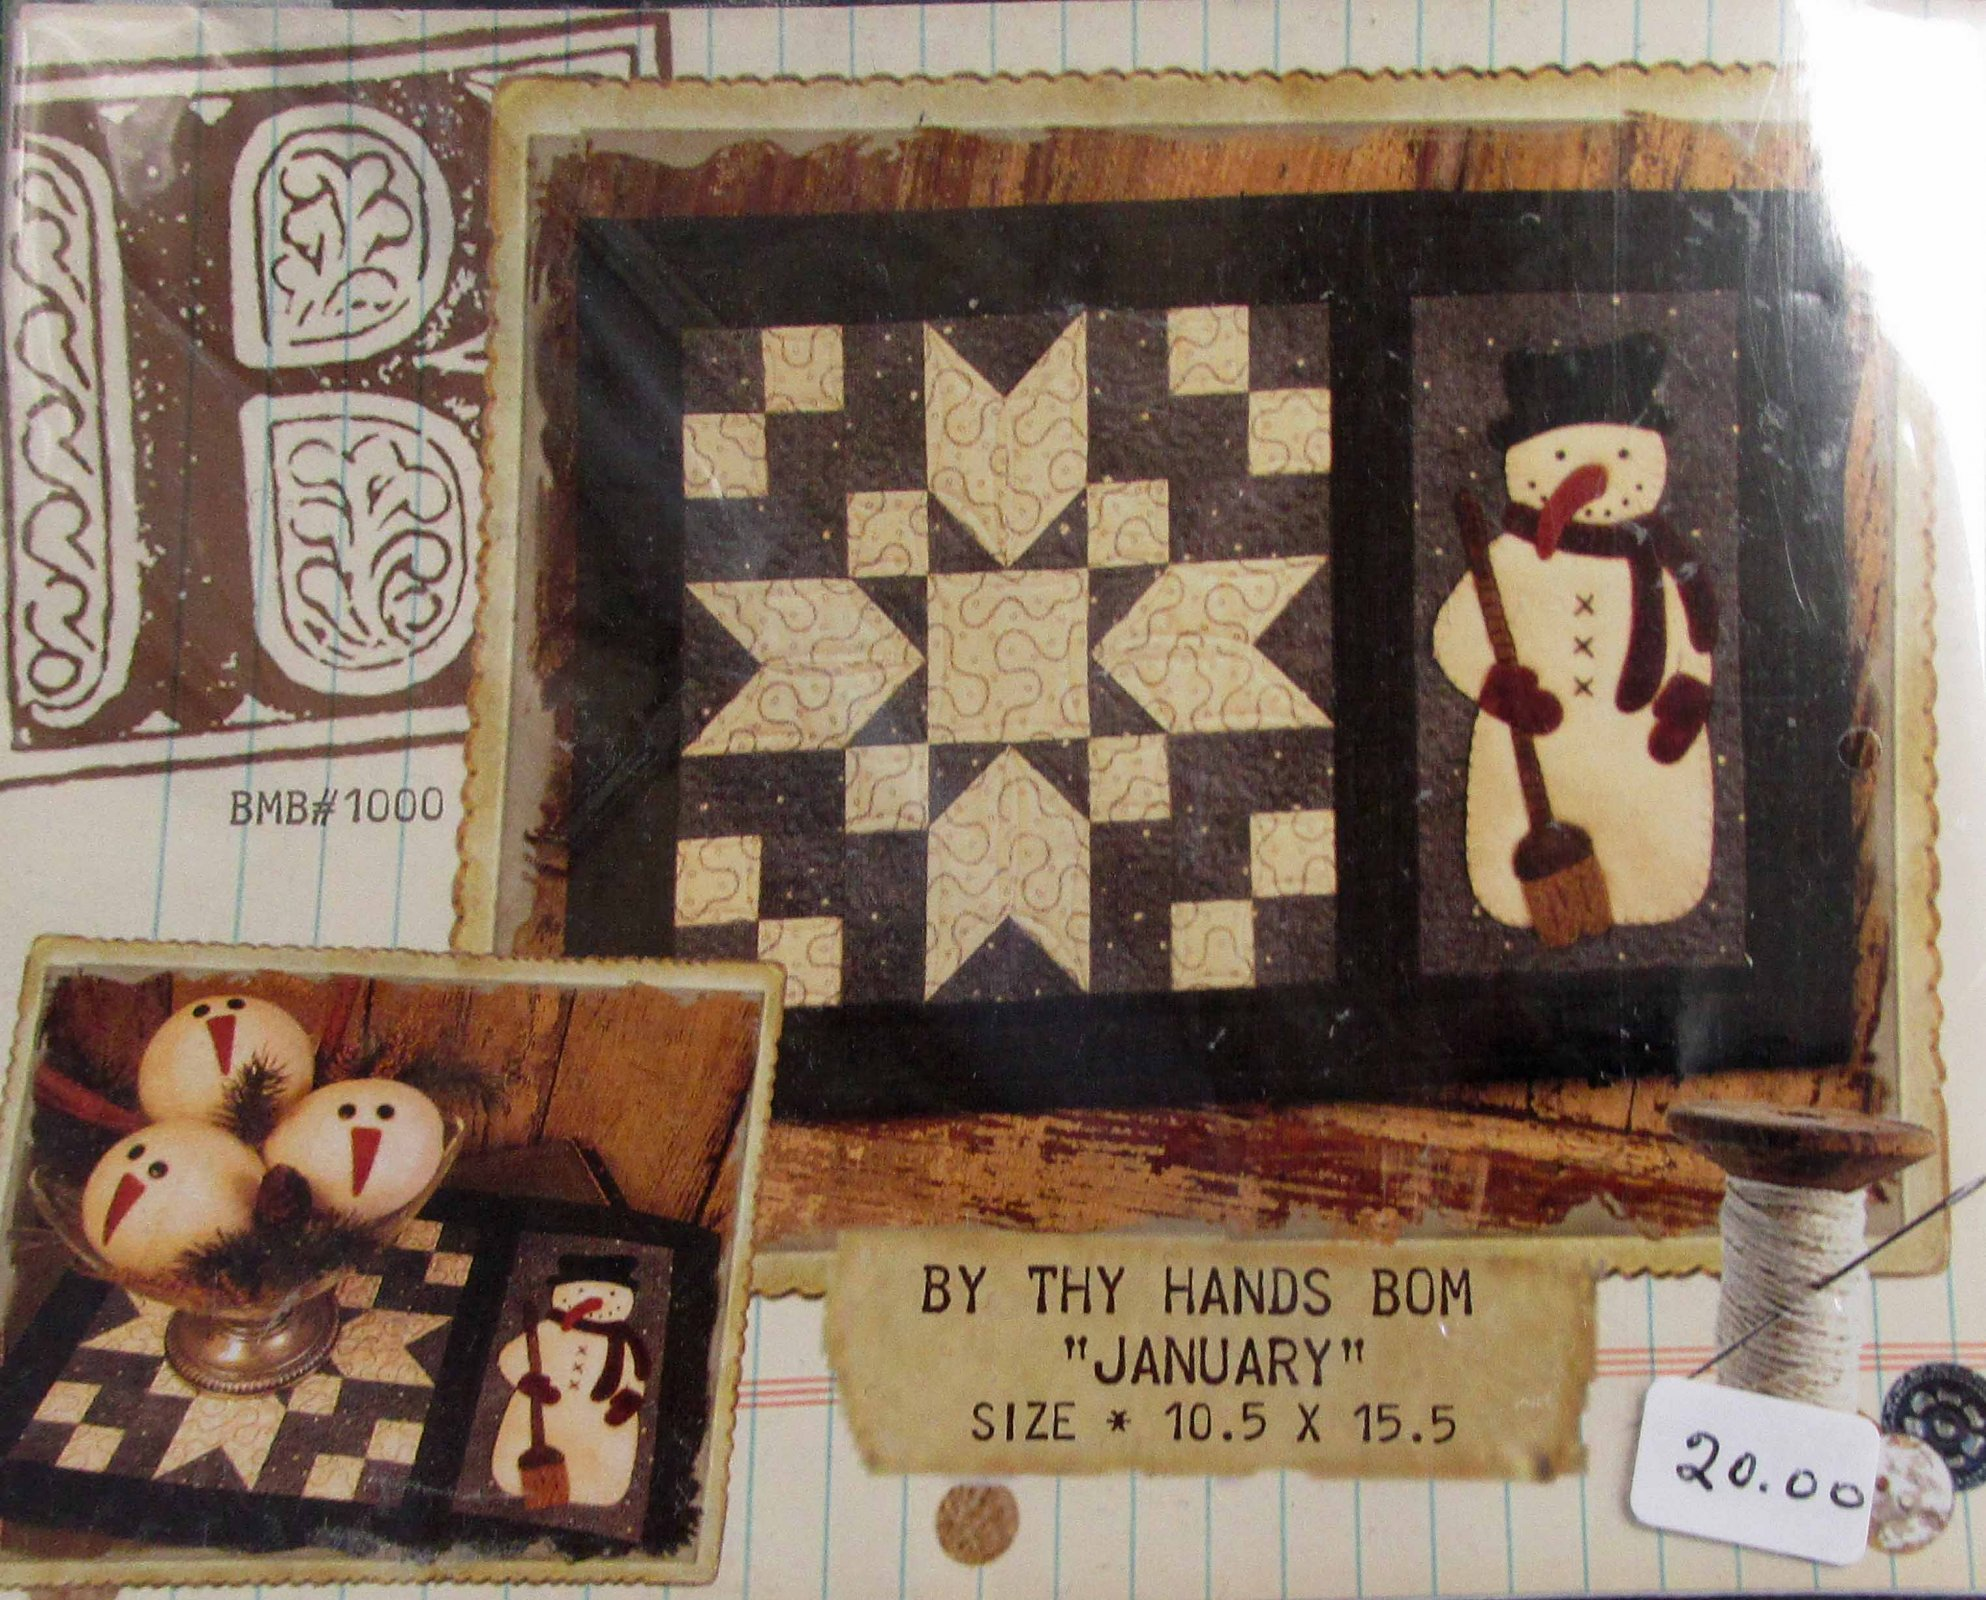 By Thy Hands: 12 different patterns, one for each month of the year